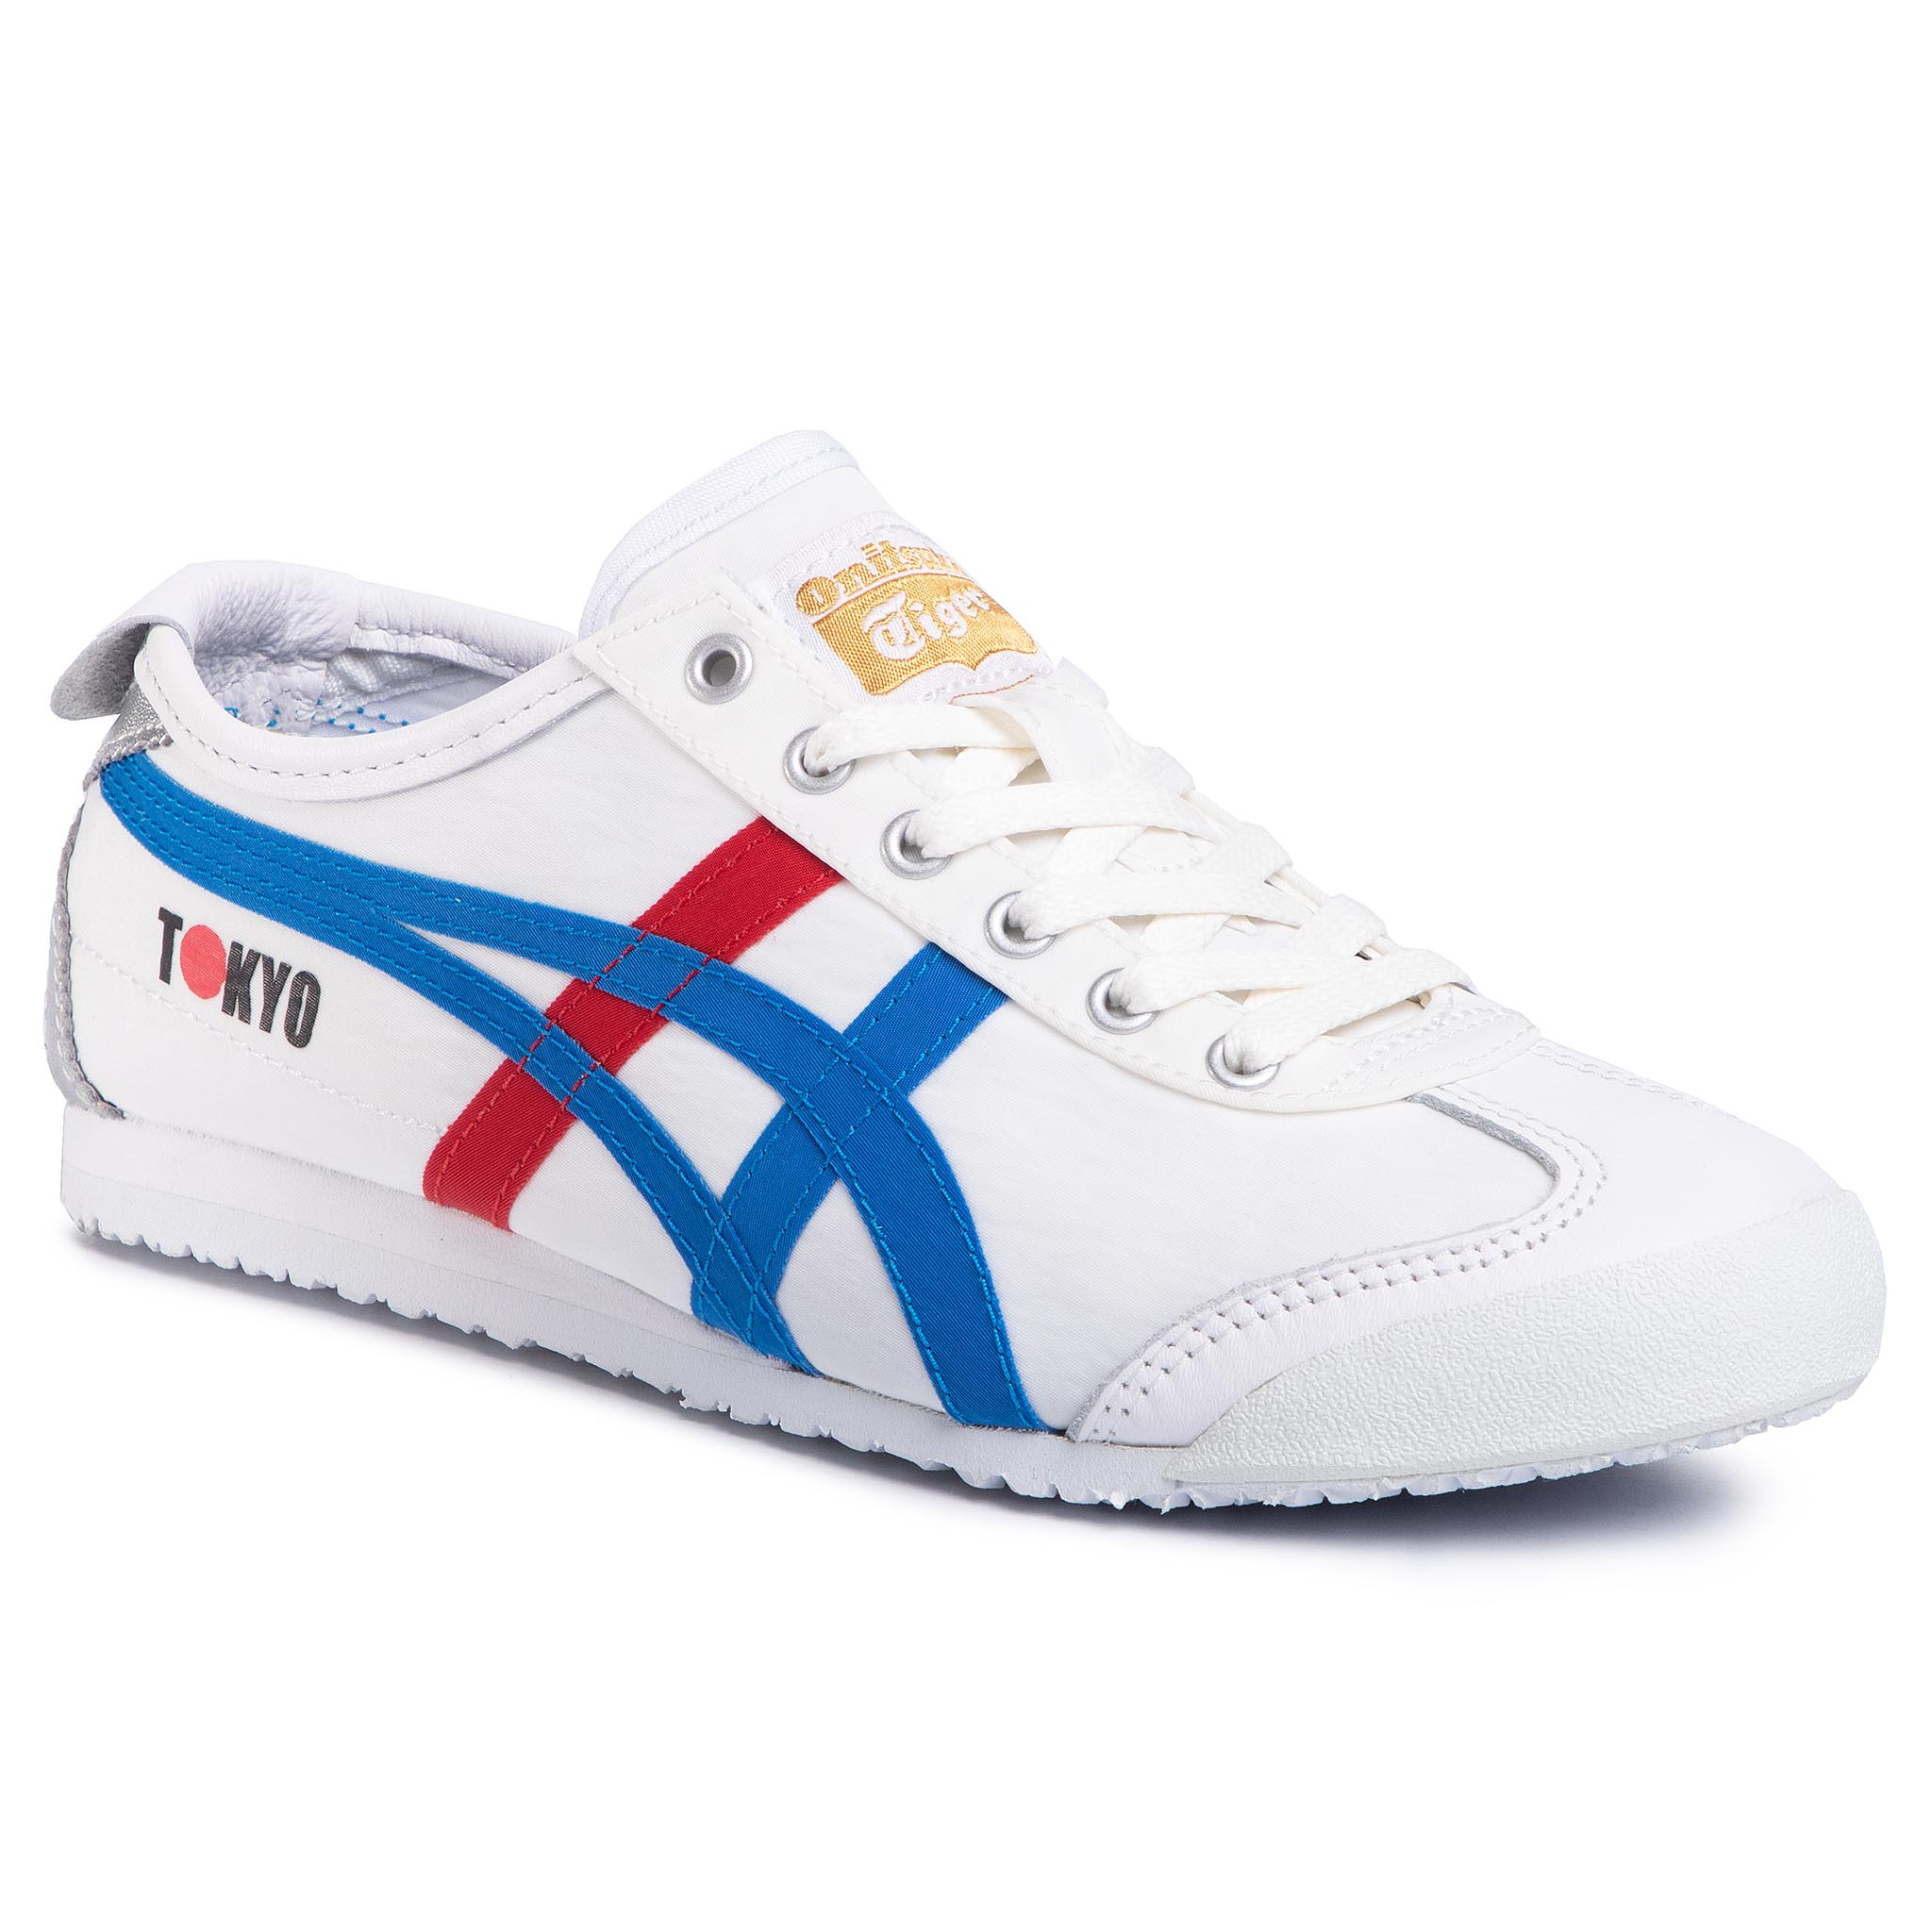 Sneaker Onitsuka Tiger Sneakers ONITSUKA TIGER - Mexico 66 1183A730 White/Directoire Blue 100